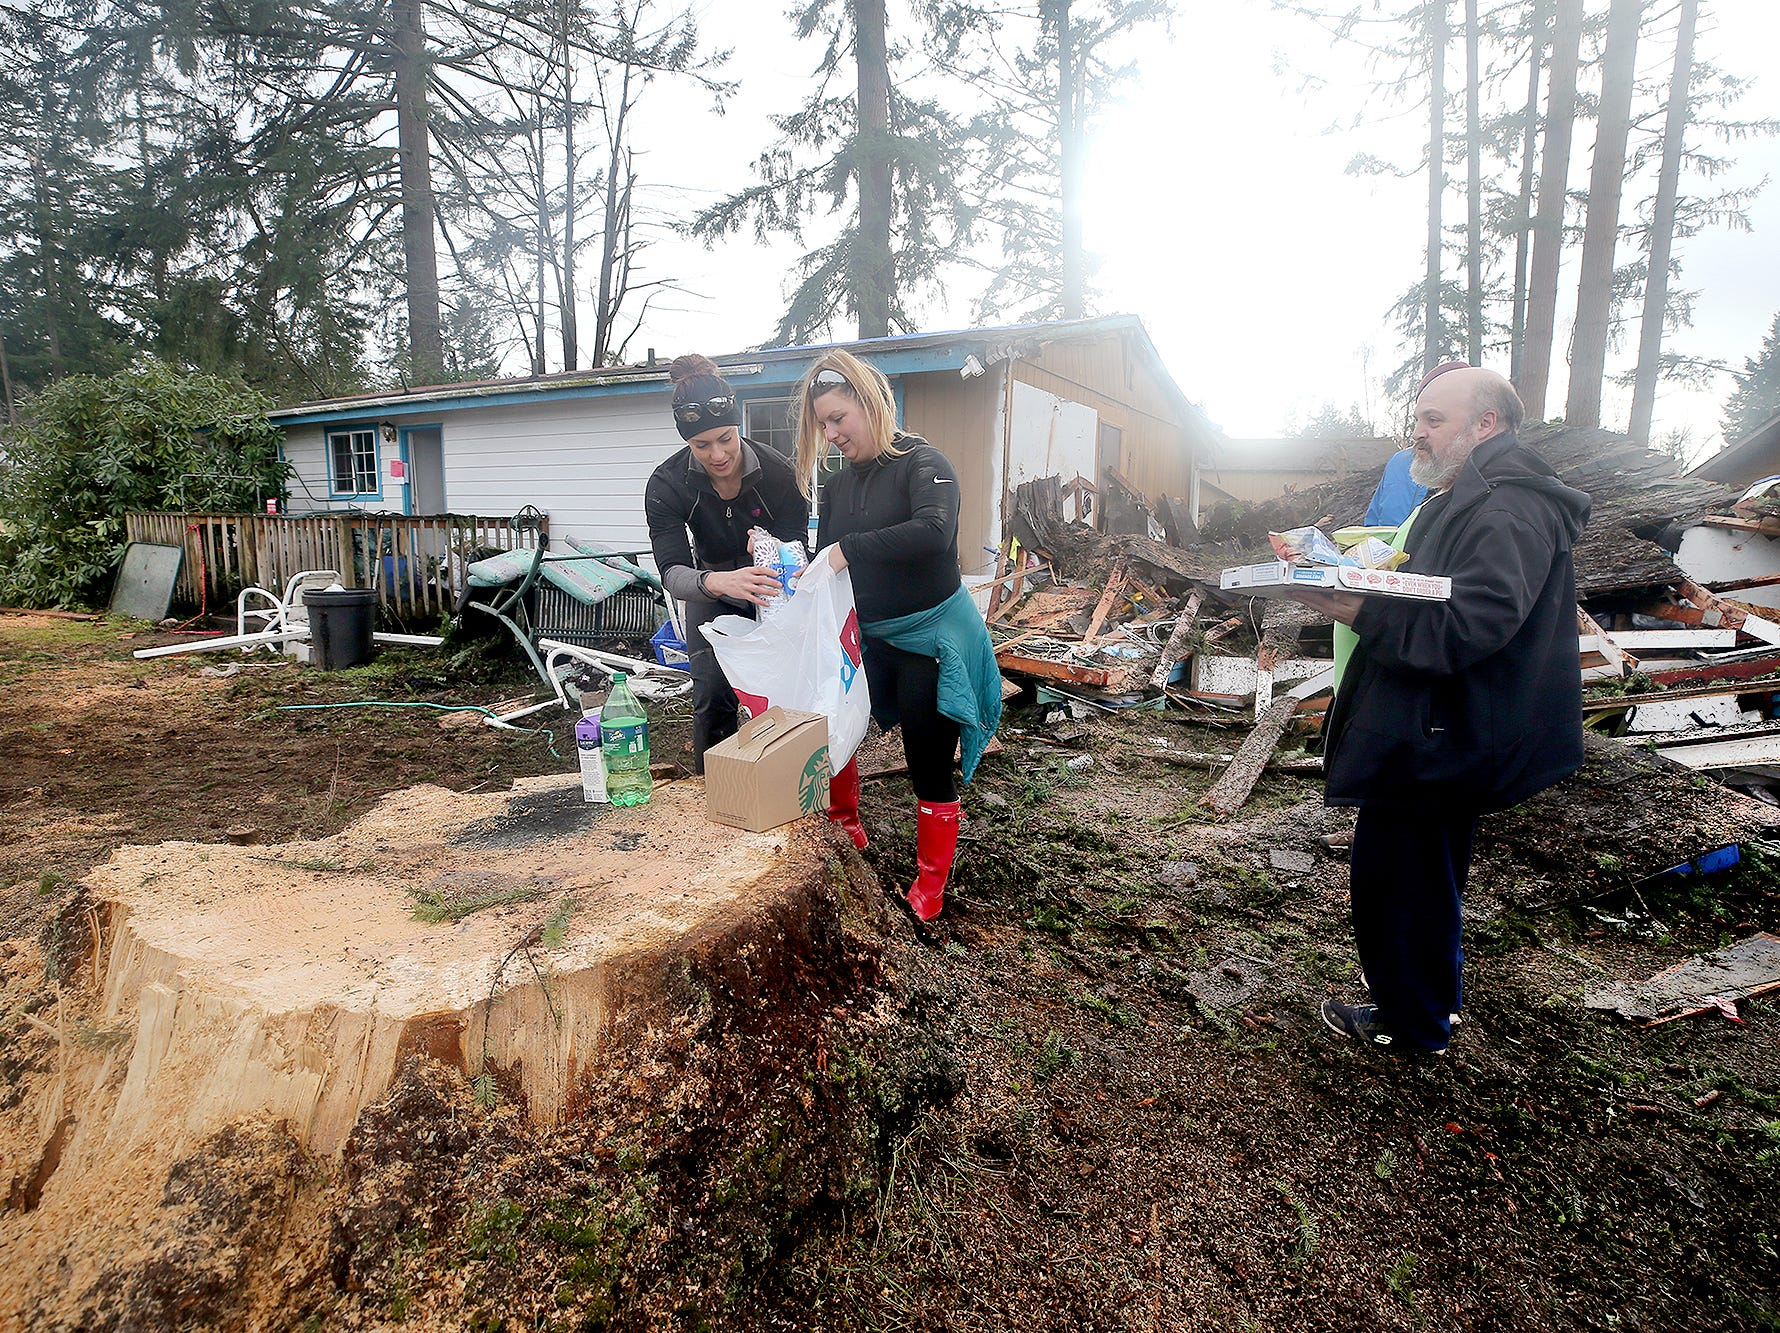 Volunteers Tiffany Cobb, center, and Terry Sulkosky from Westcoast Fitness in Port Orchard, deliver pizza, coffee, and snacks to tornado victim Chris Blake, right, on Thursday, December, 27, 2018. Blake's home in the background, on Serenade Way in Port Orchard was damaged, and he lost some big trees.